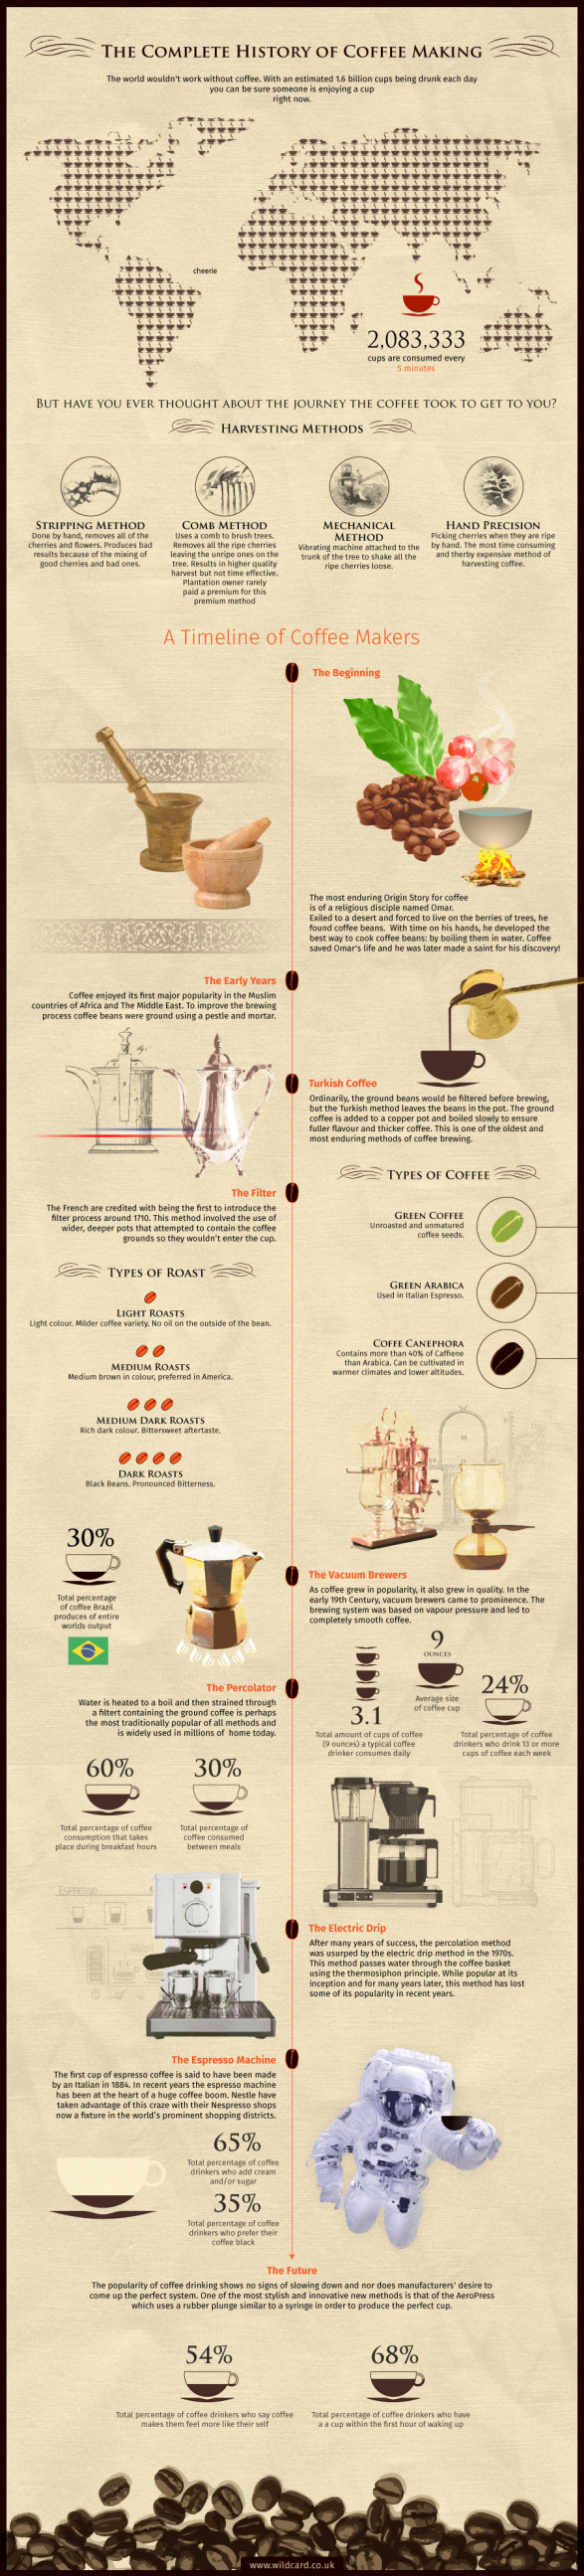 Complete History of Coffee Making